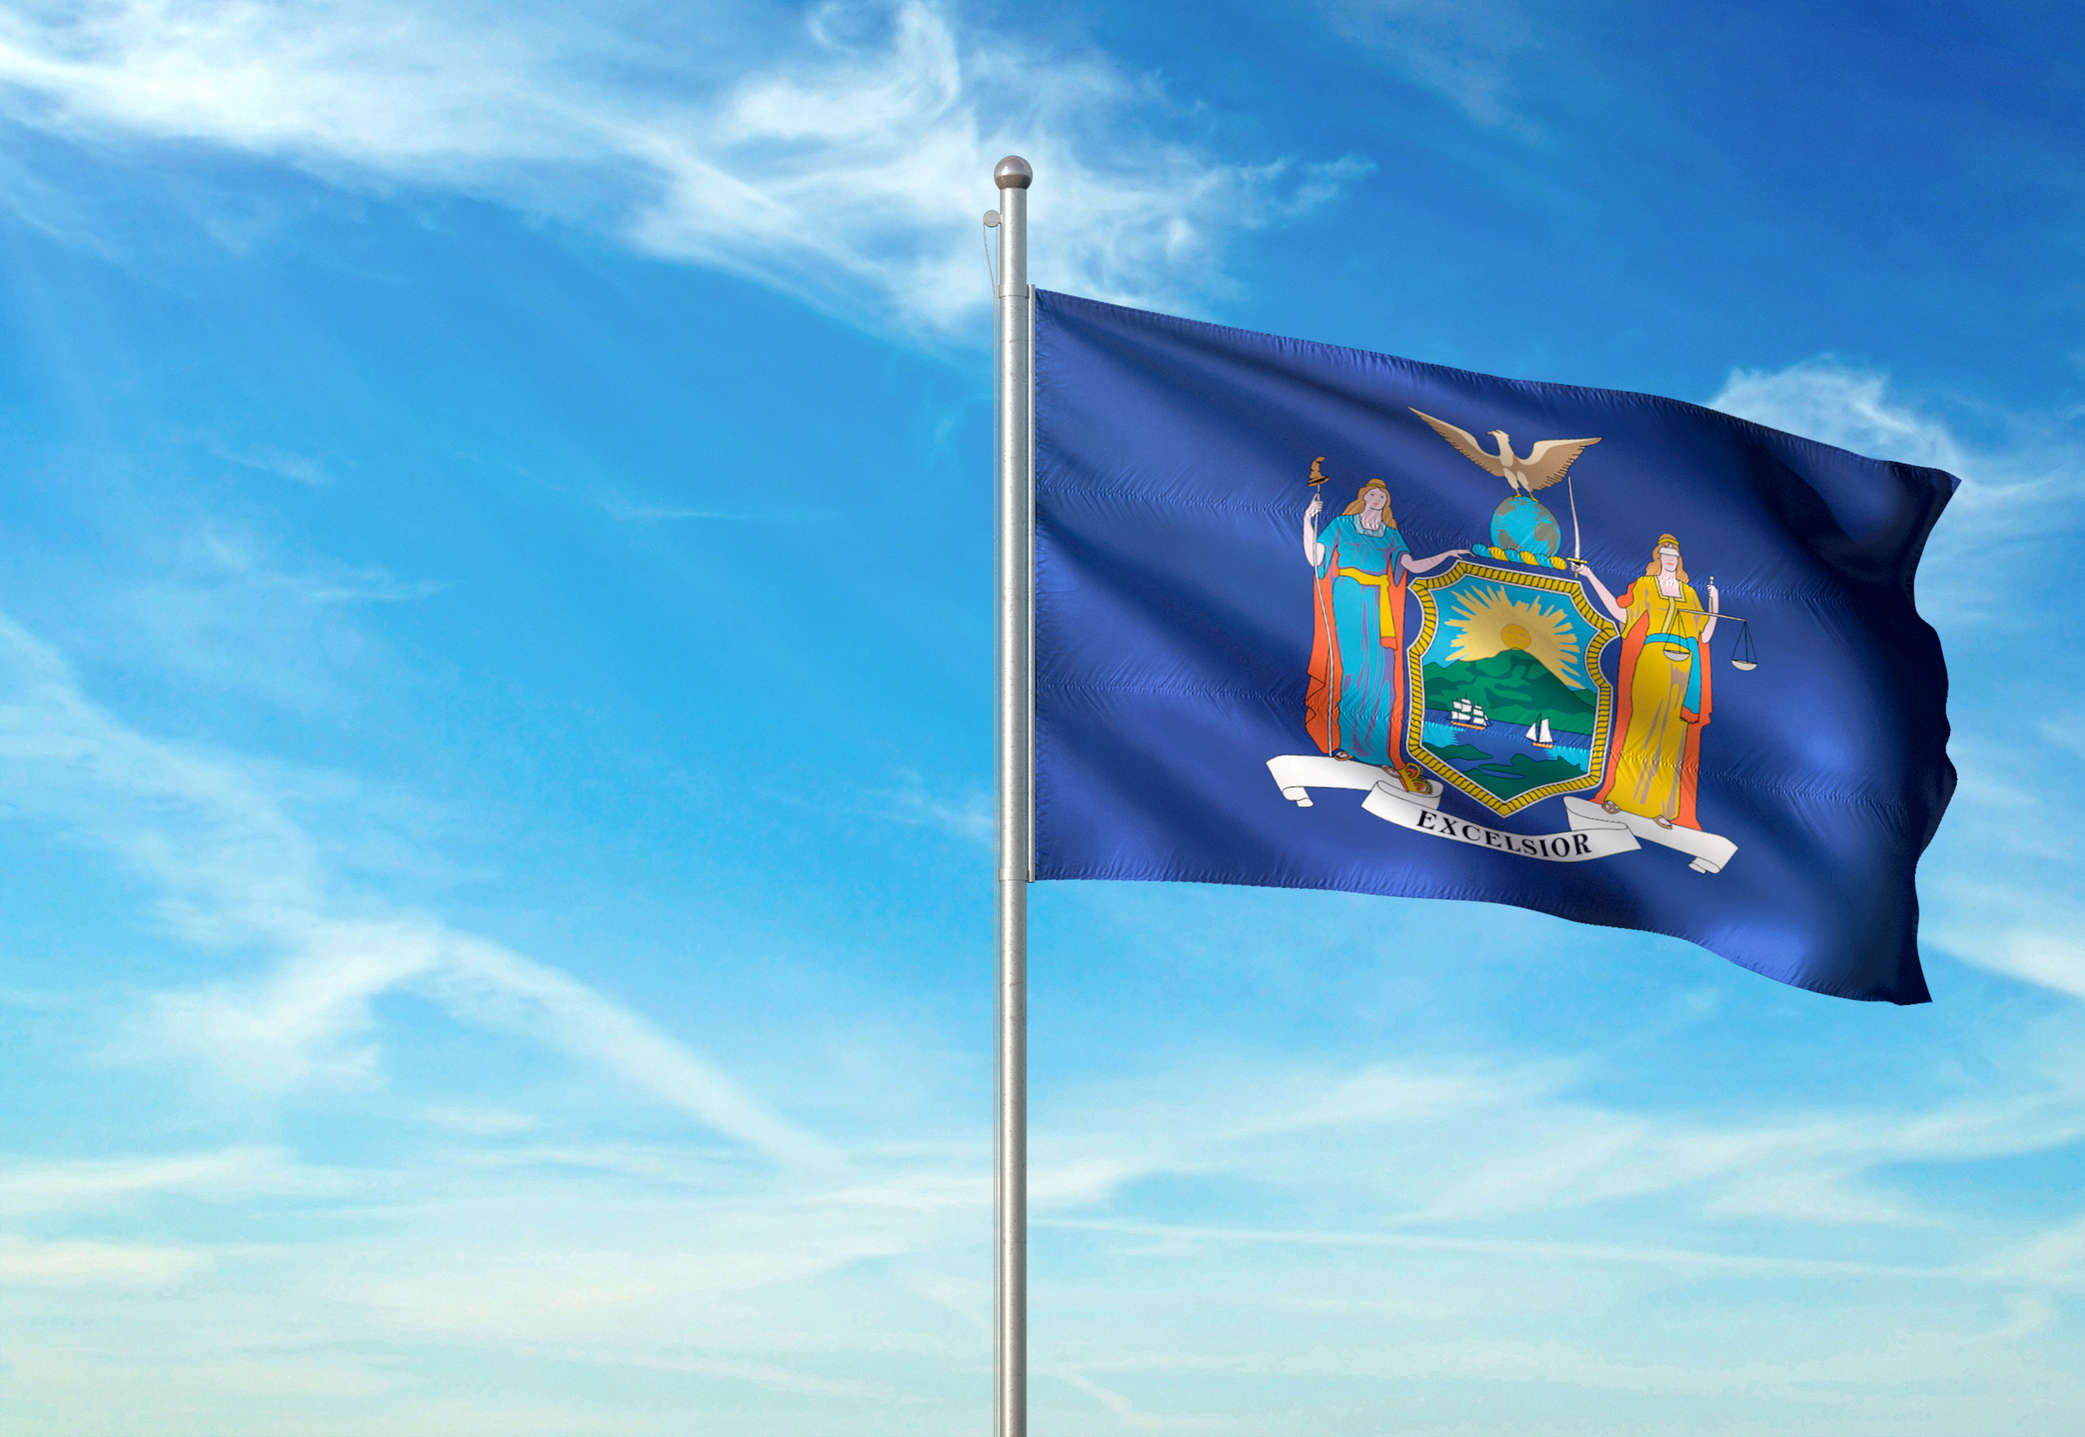 New York state of United States flag waving cloudy sky background